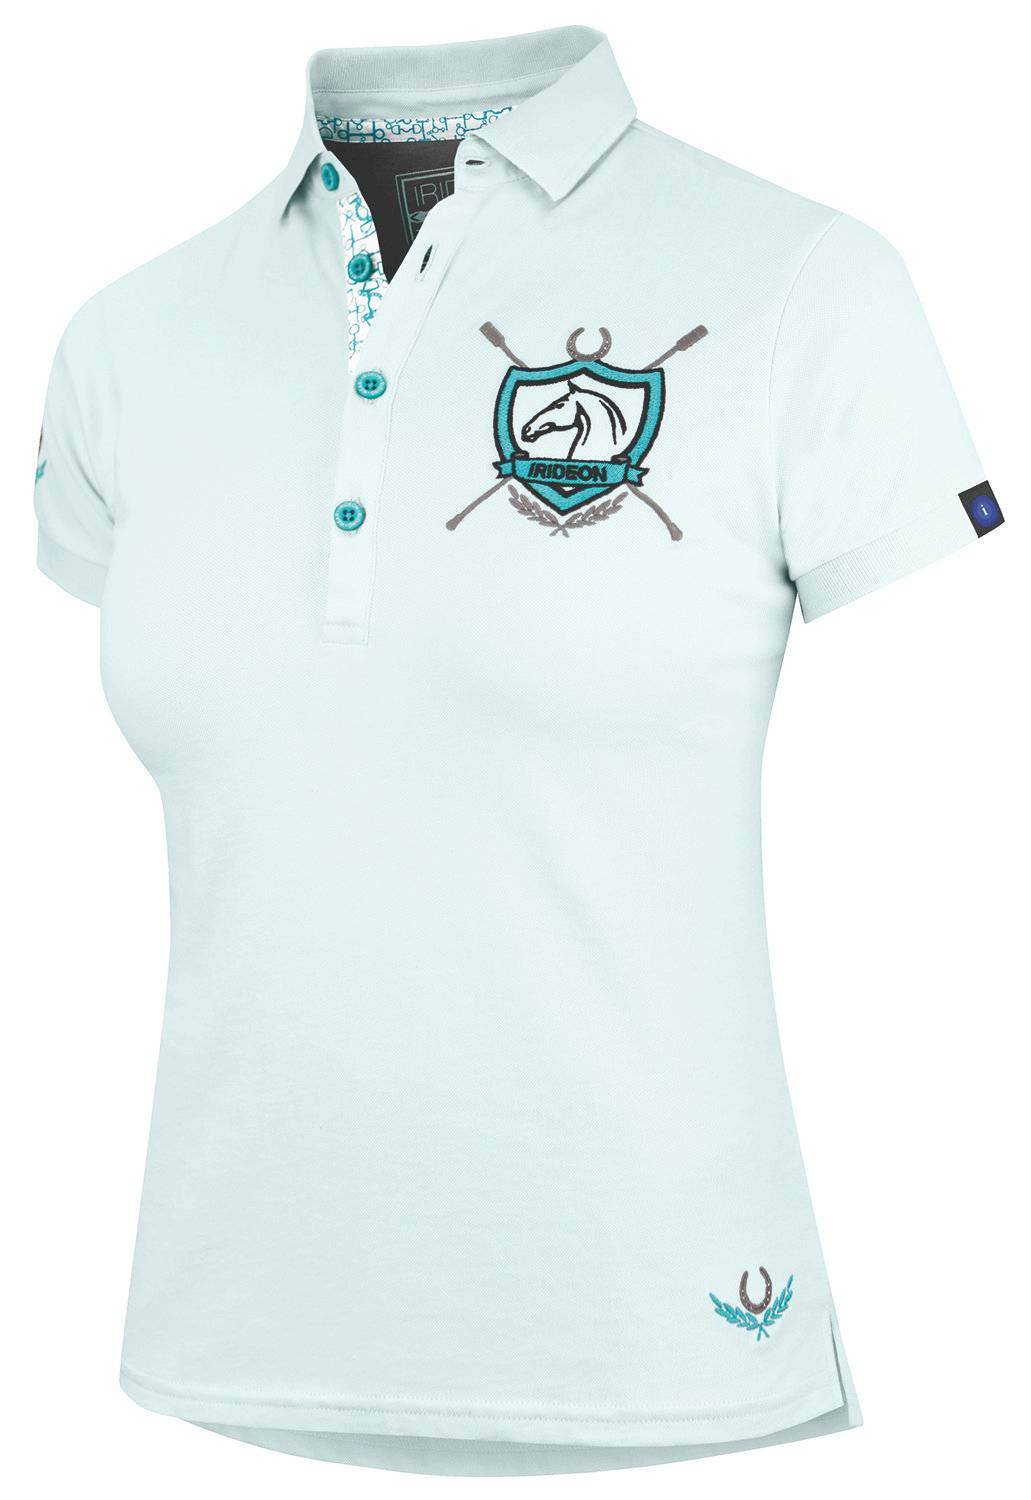 Irideon Princeton Polo Shirt - Kids